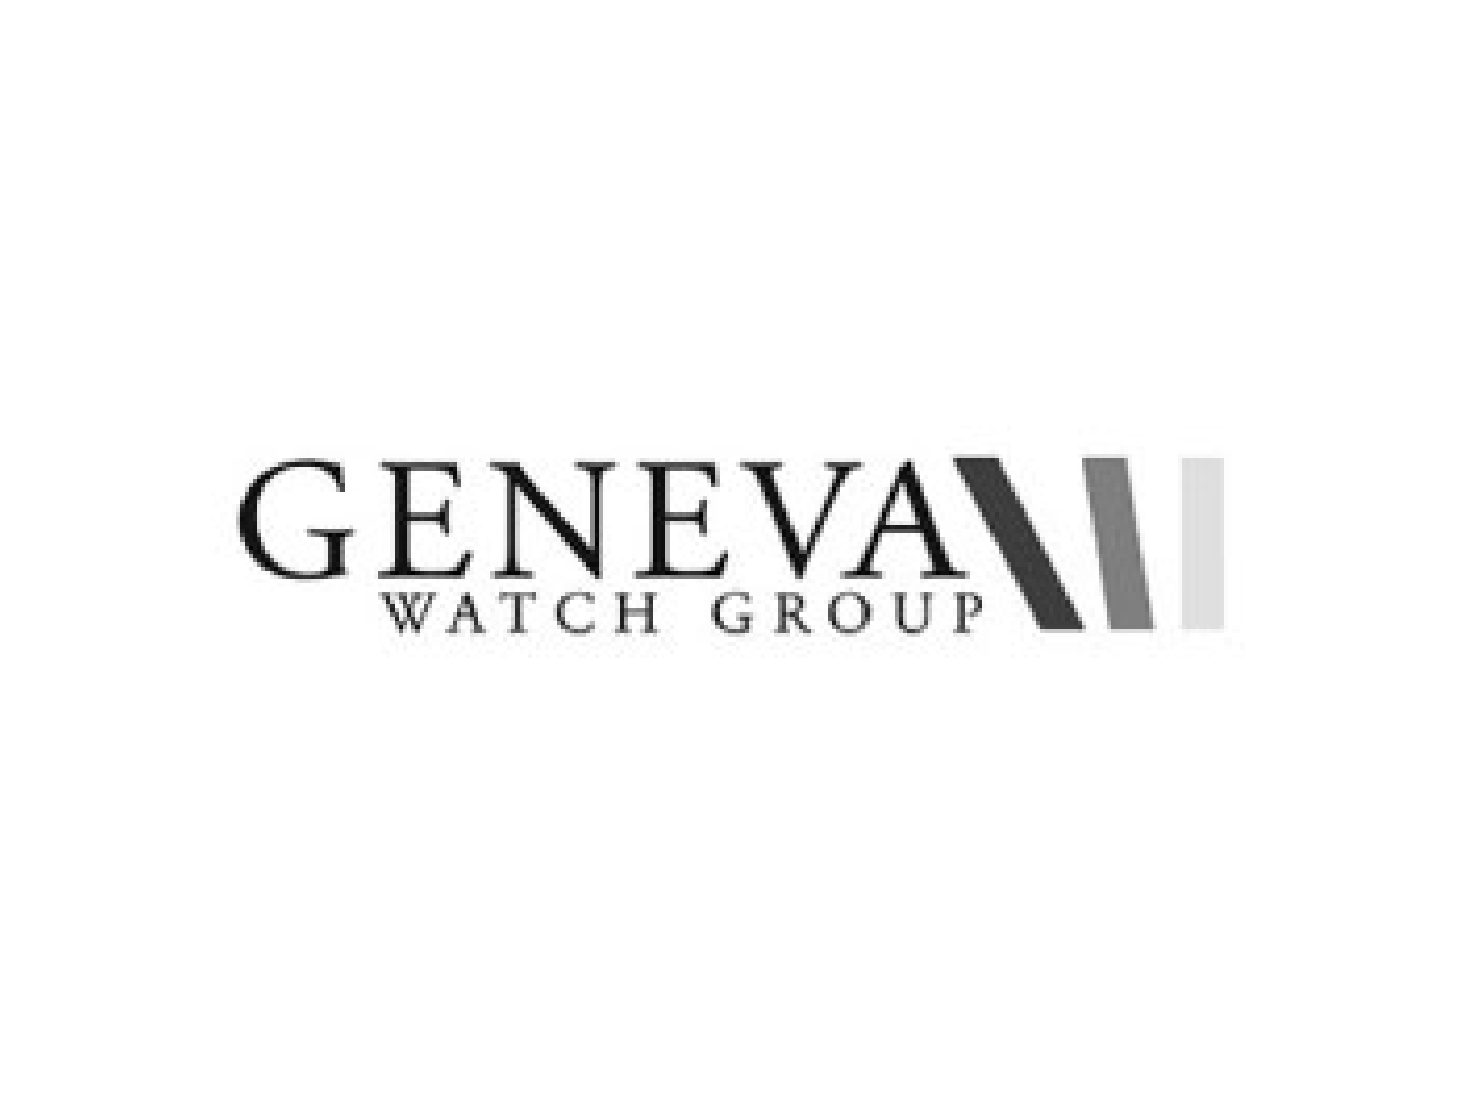 Geneva Watch Group